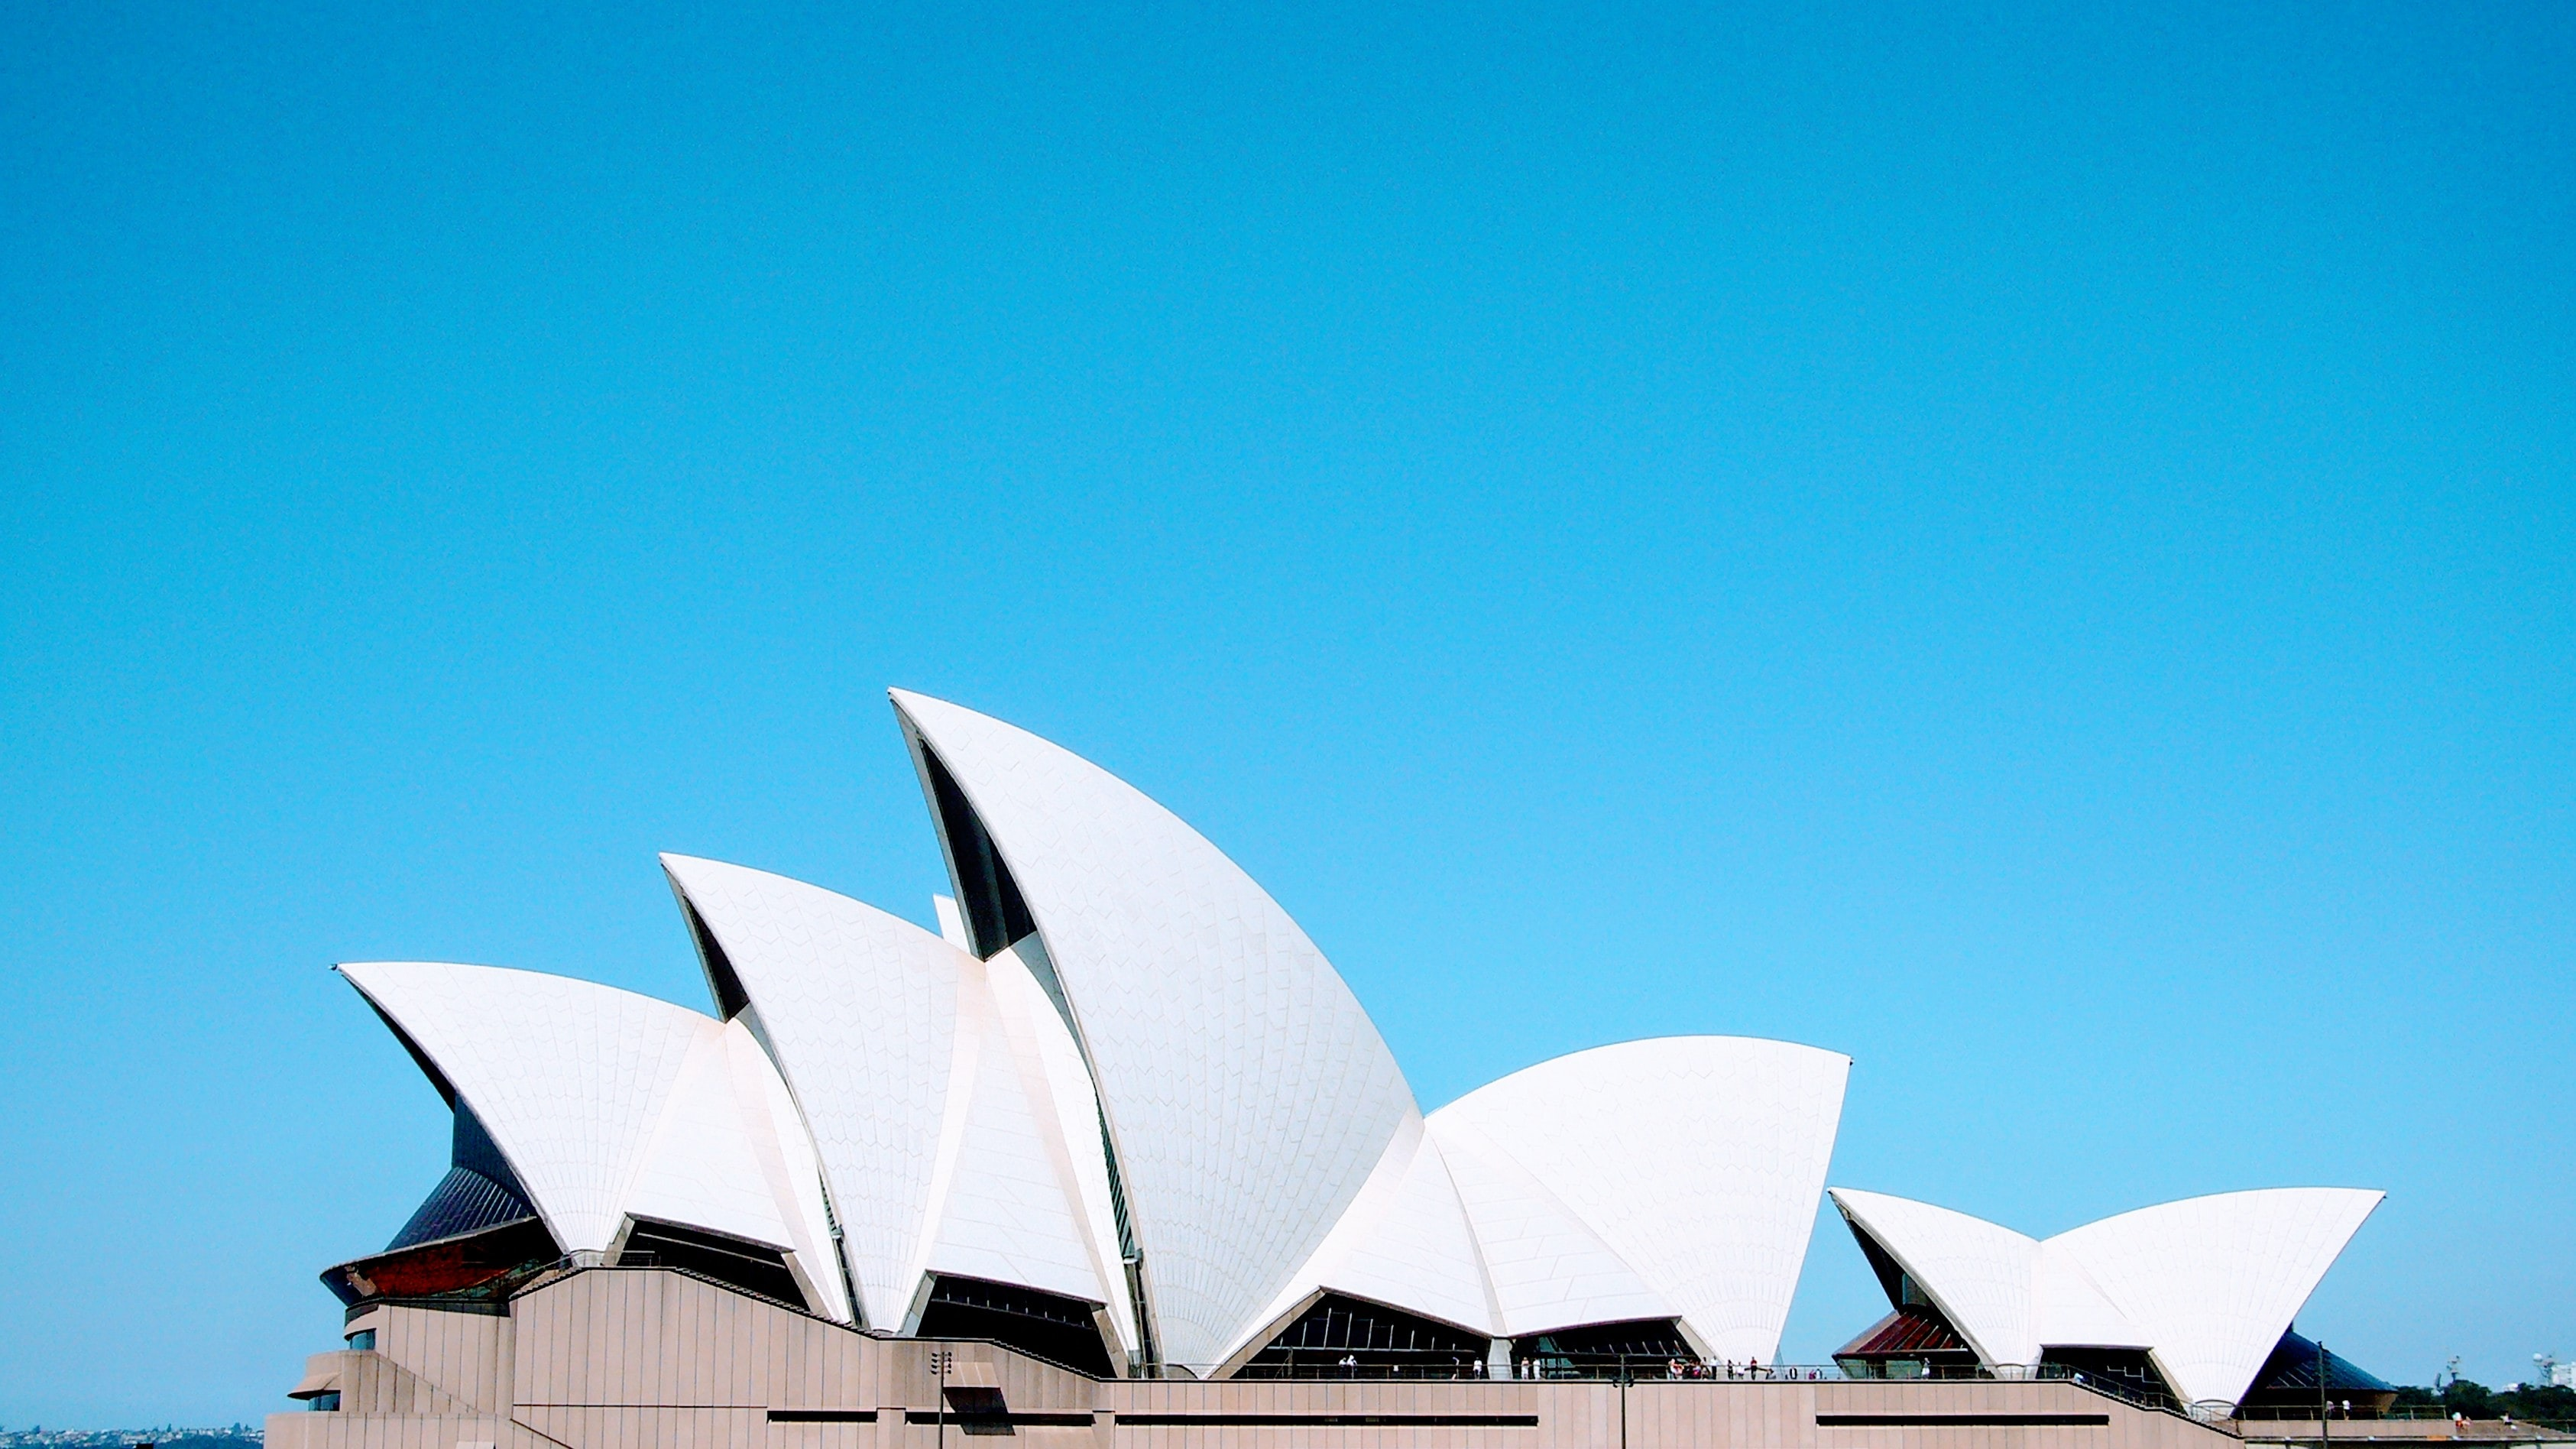 Opera House Pictures Download Free Images On Unsplash